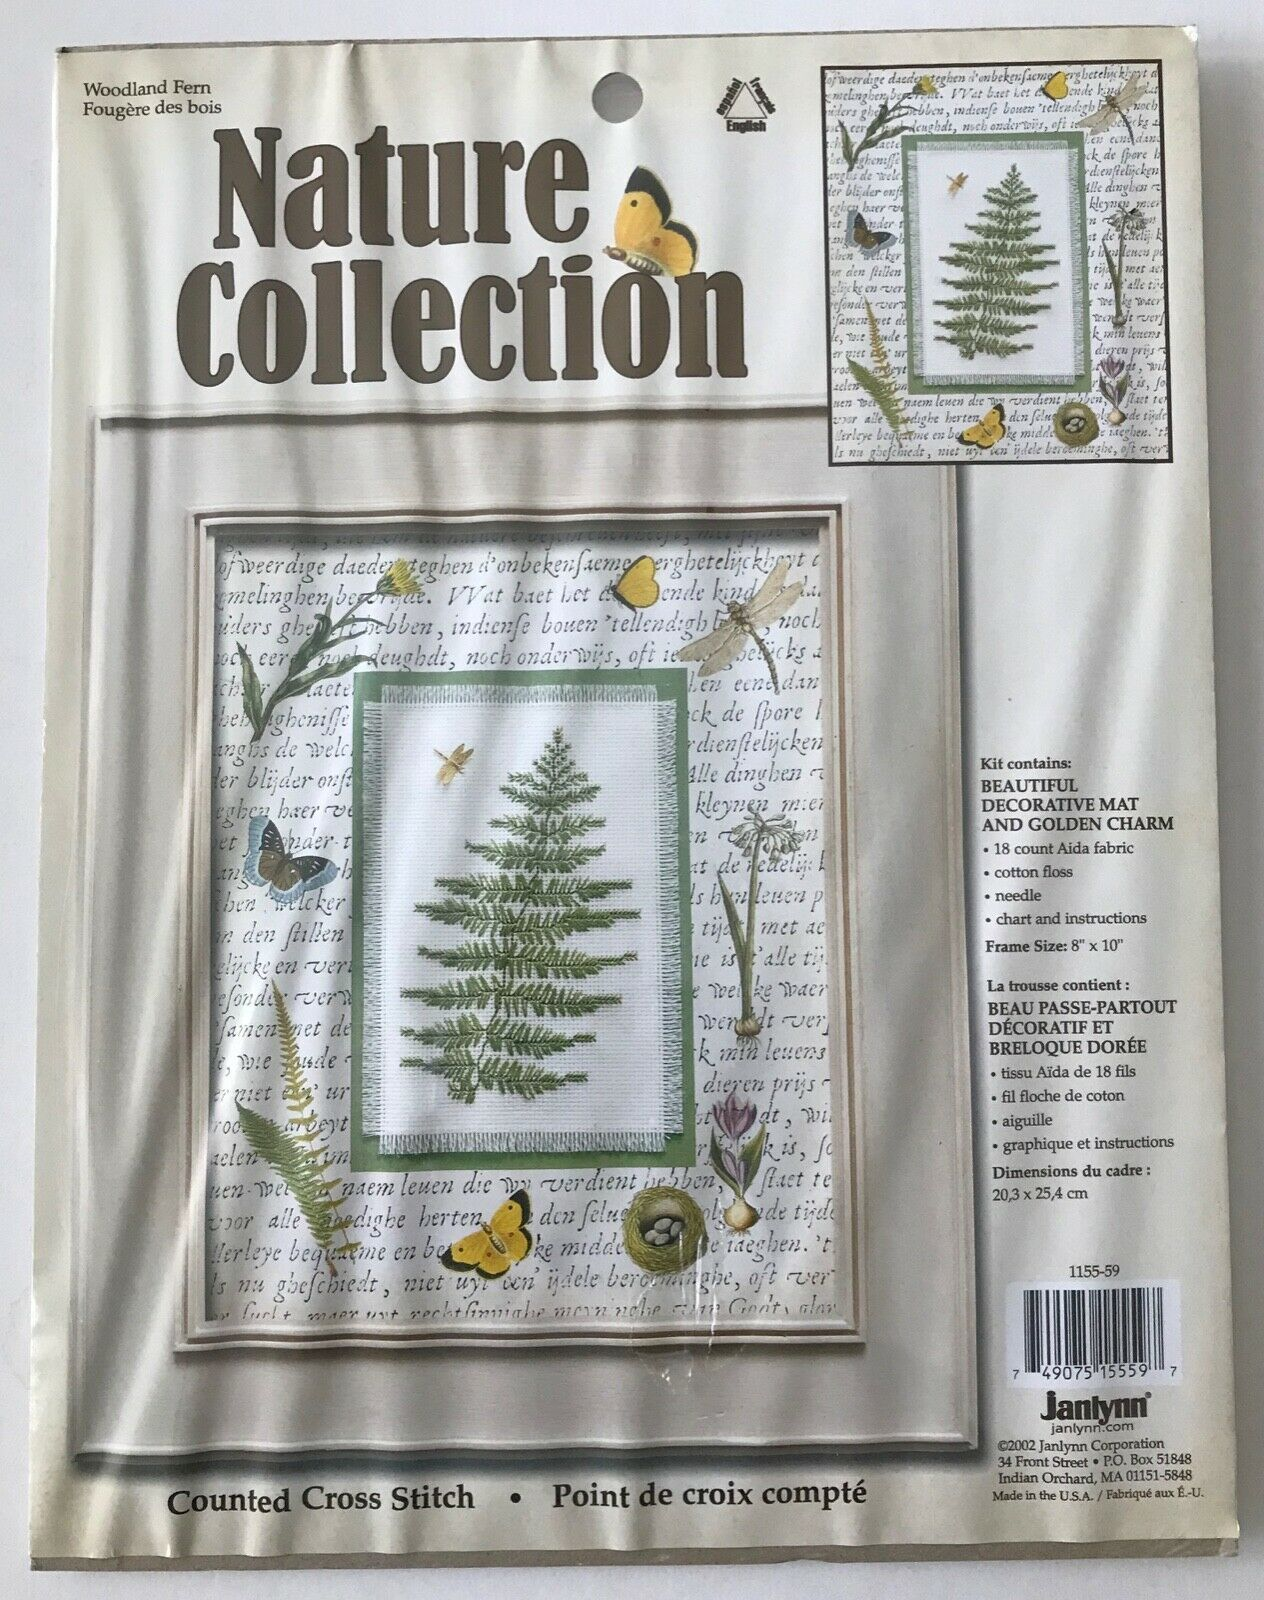 Janlynn Woodland Fern Counted Cross Stitch Kit 1155-59 + Golden Charm 2002 NIP